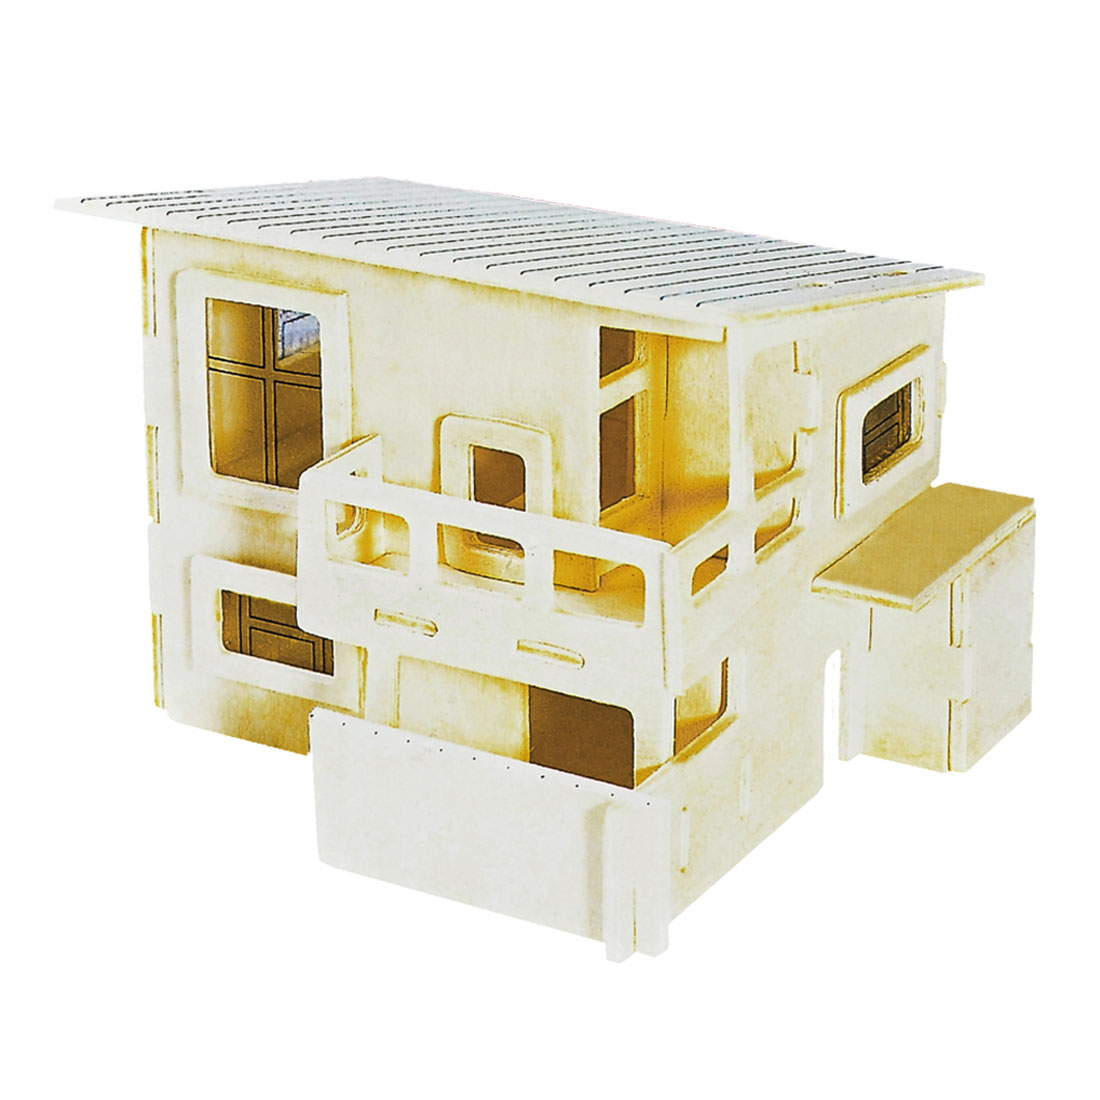 Child 3D Wood Wateitaku Model Woodcraft Construction Kit Puzzle Toy